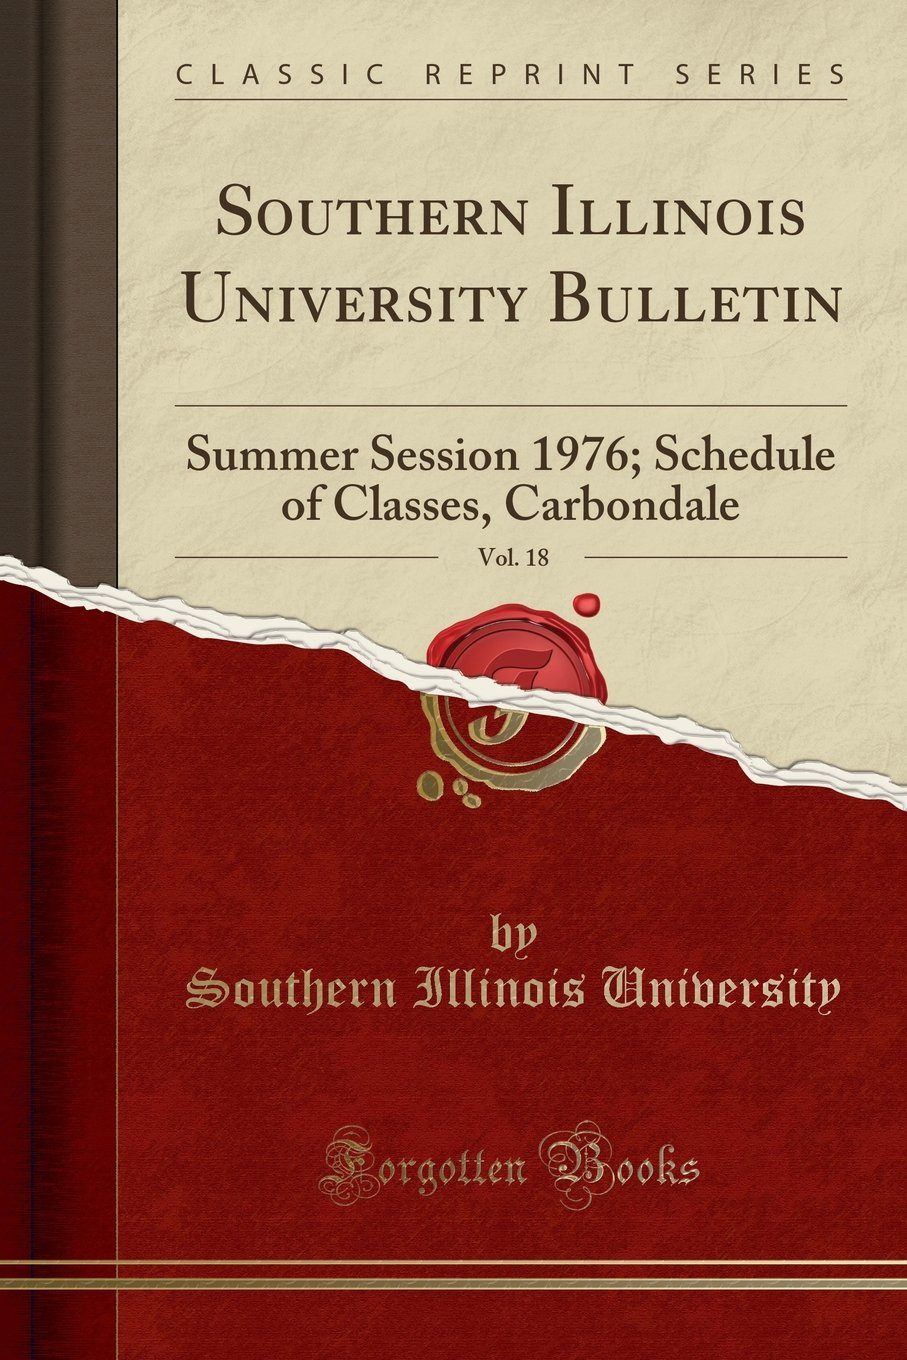 Southern Illinois University Bulletin, Vol. 18: Summer Session 1976; Schedule of Classes, Carbondale (Classic Reprint) ebook